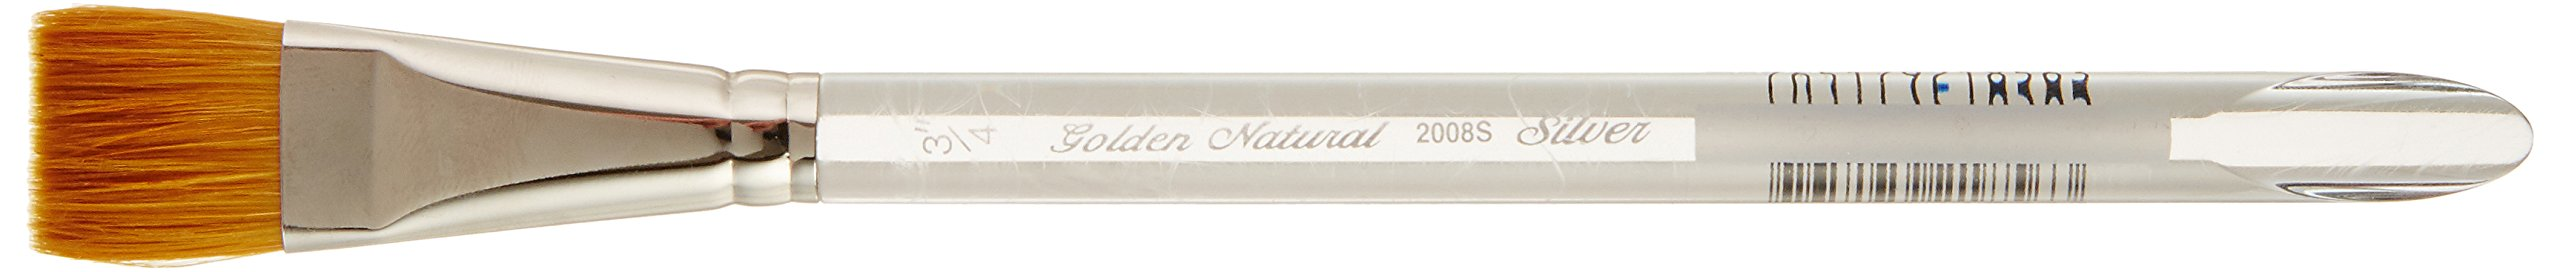 Silver Brush 2008S-034 Golden Natural Hair and Taklon Short Handle Blend Brush, Square Wash, 3/4-Inch